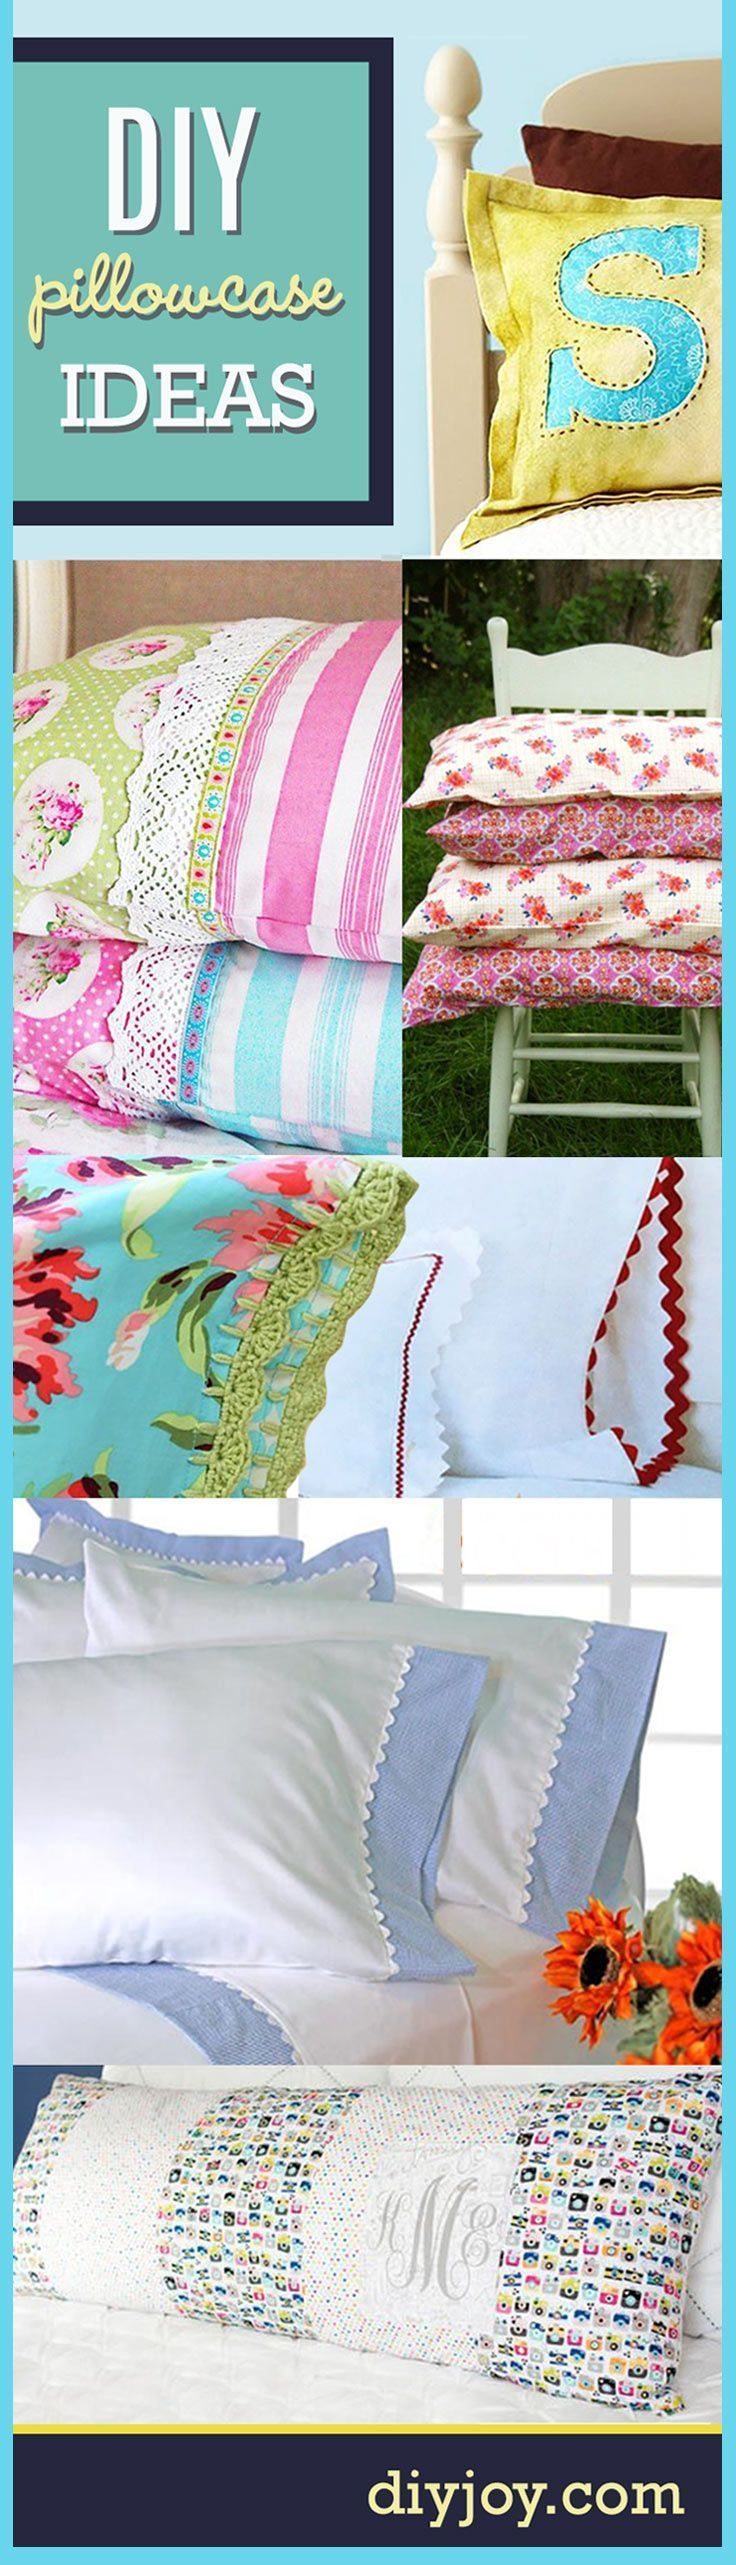 14 diy pillowcases youll fall in love with diy sewing projects diy pillowcases and diy sewing projects for pillows easy and creative do it yourself bedroom solutioingenieria Images